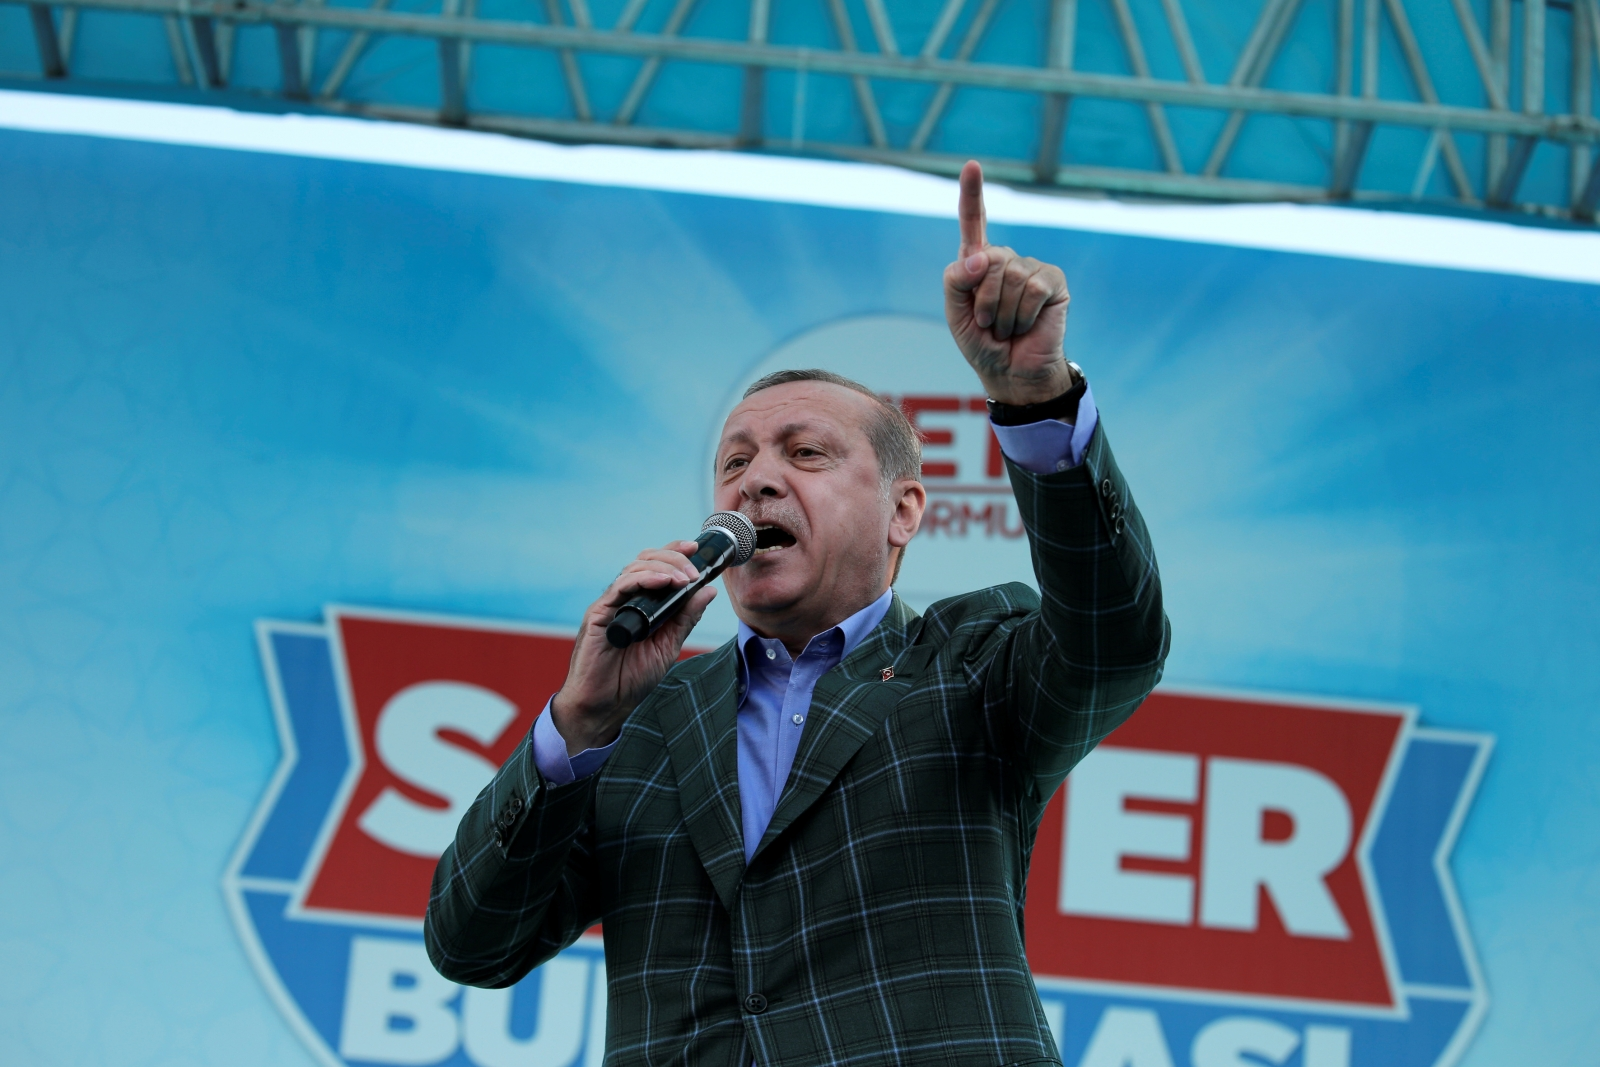 Erdogan Wins Turkey Referendum, Opposition Kicks